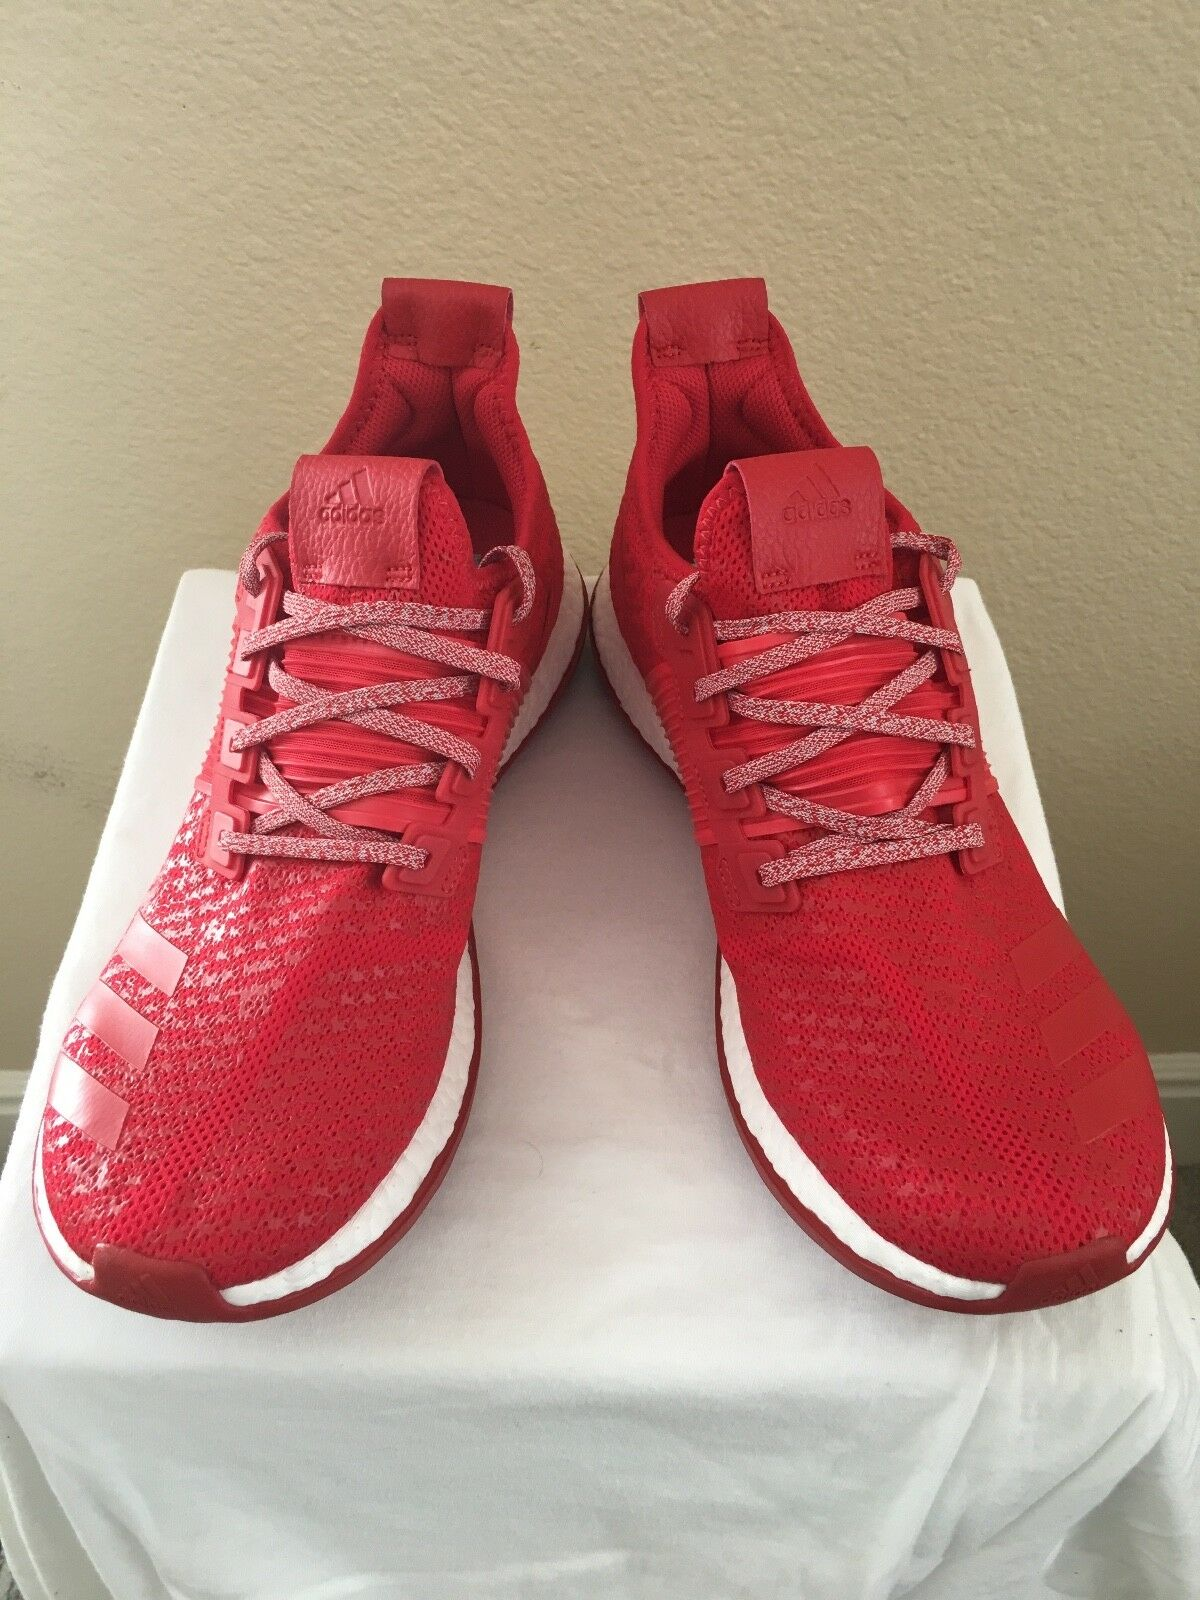 b957827fb9 Adidas Men s Pure Boost ZG shoes Size 12 BA8453 Athletic shoes Running NEW  DS